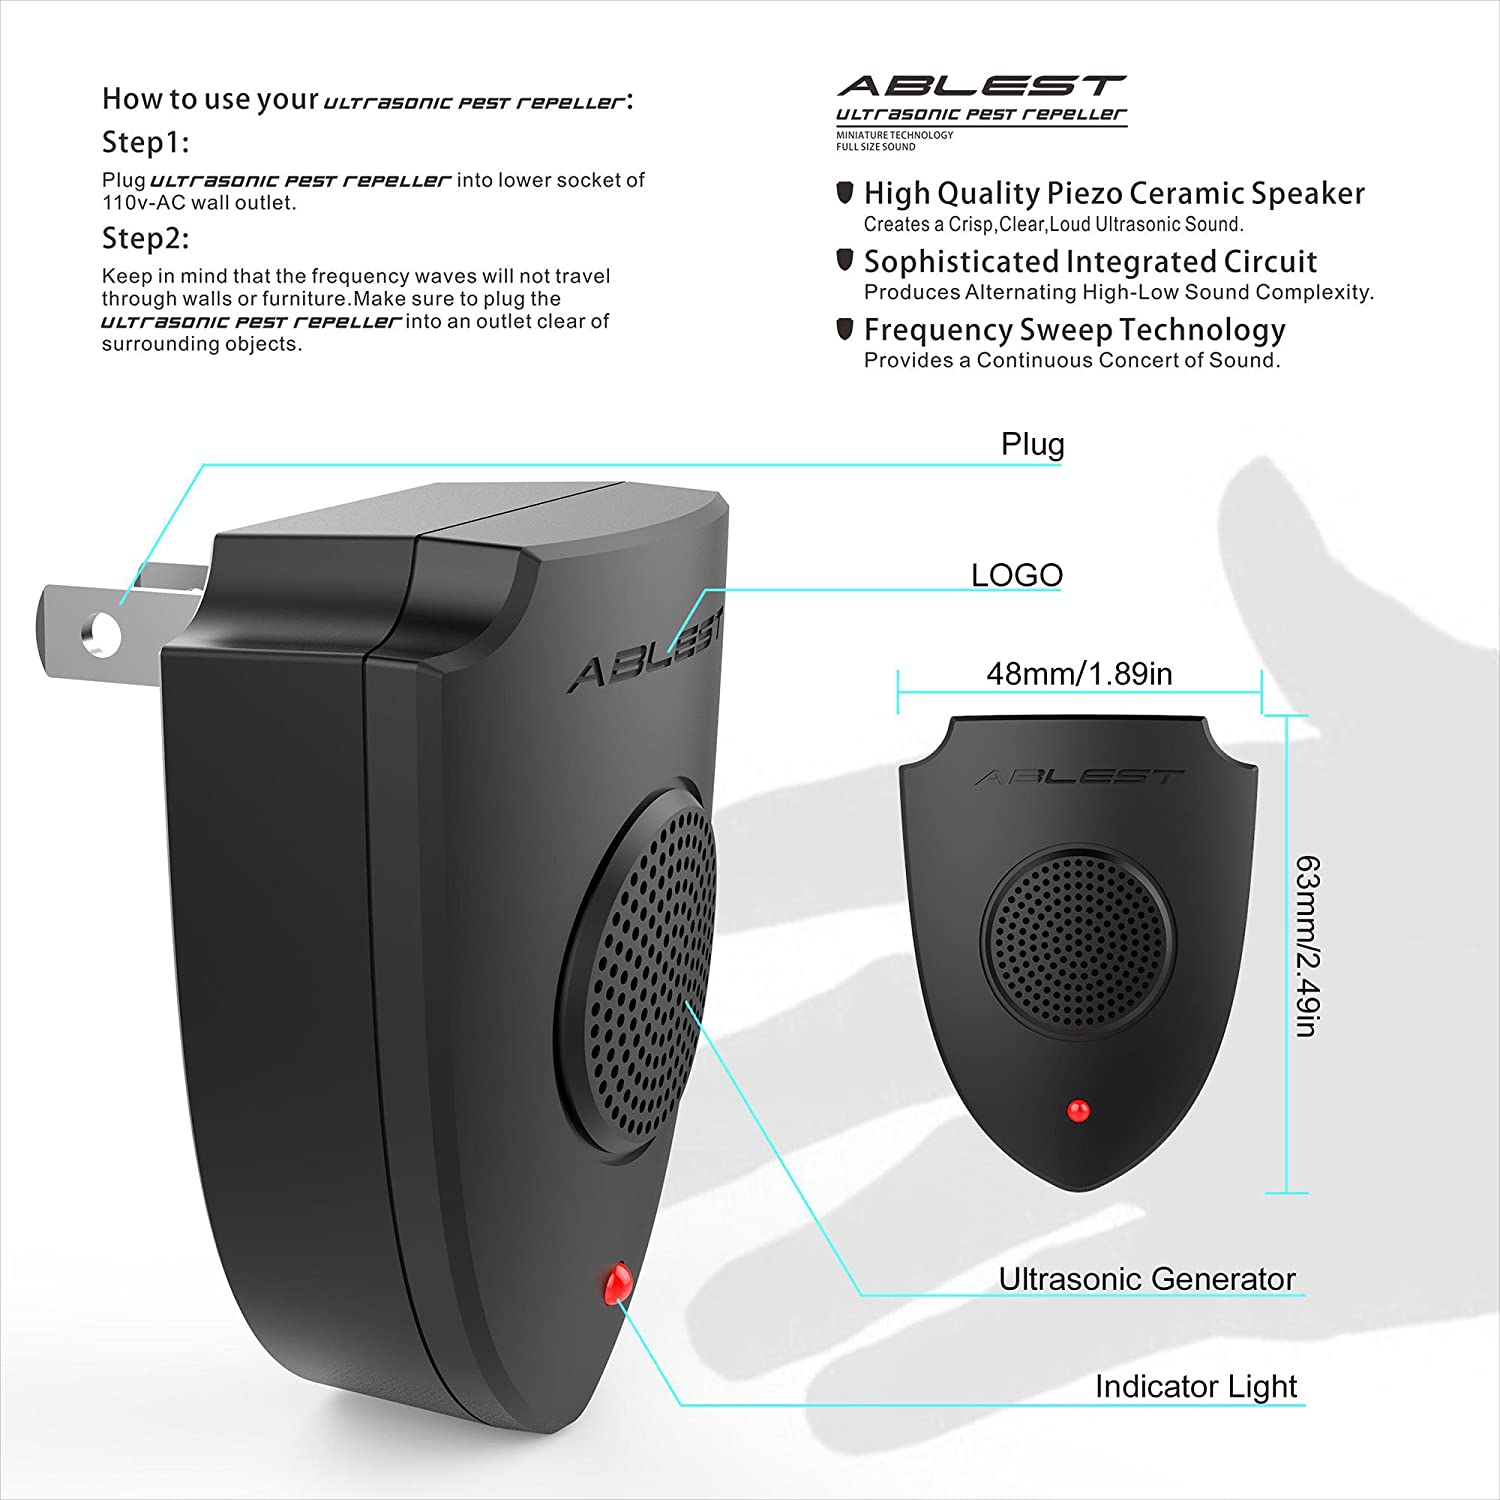 Ultrasonic Pest Repeller Circuit Ablest Indoor Chaser Control Reject For Mice Cockroaches Spiders Bug Mosquitoes Ants Mouse Warrior Black Garden